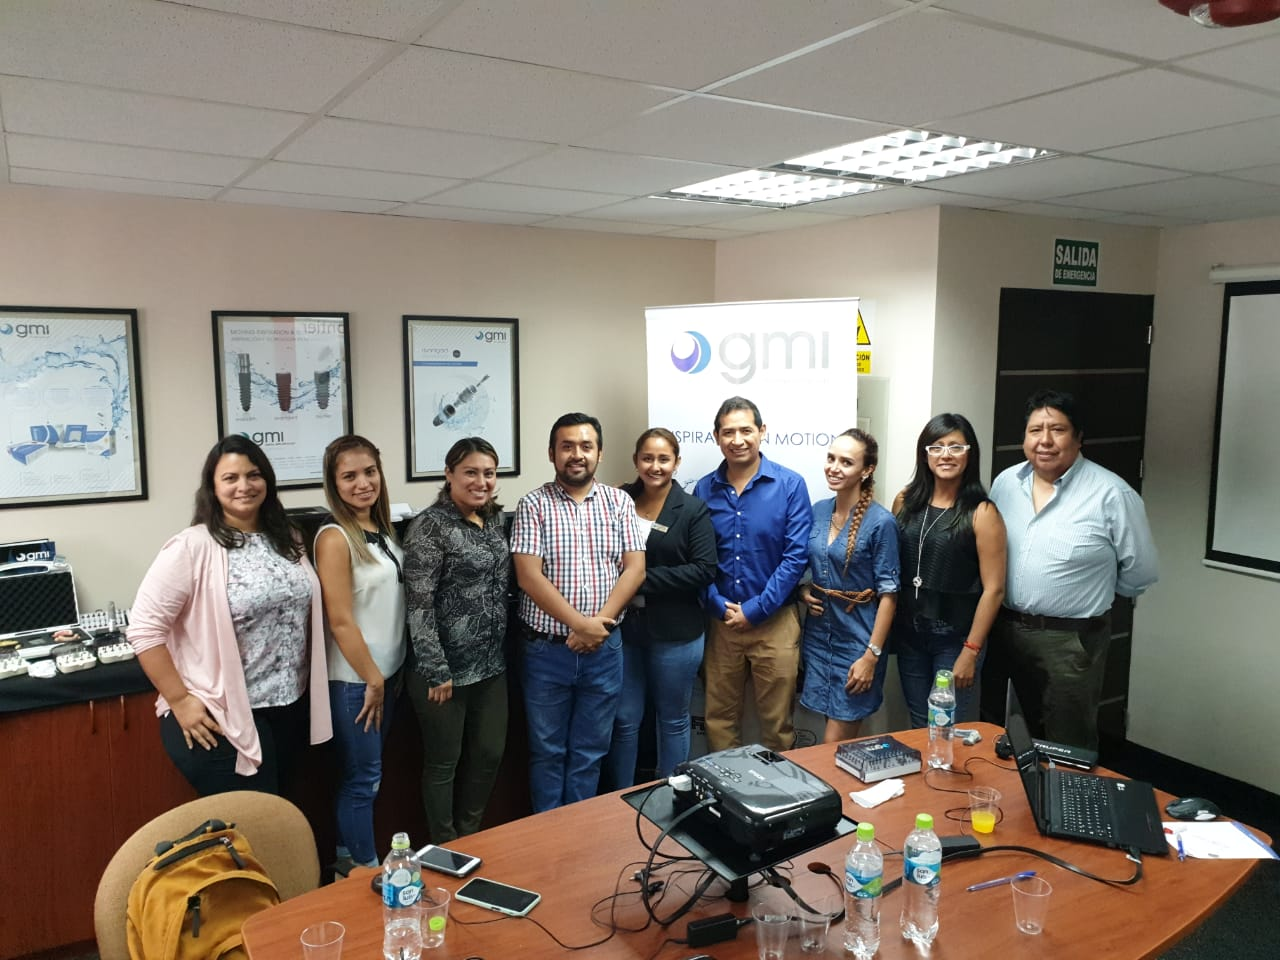 Workshop of Guided surgery and 3D printing organized by GMI Peru